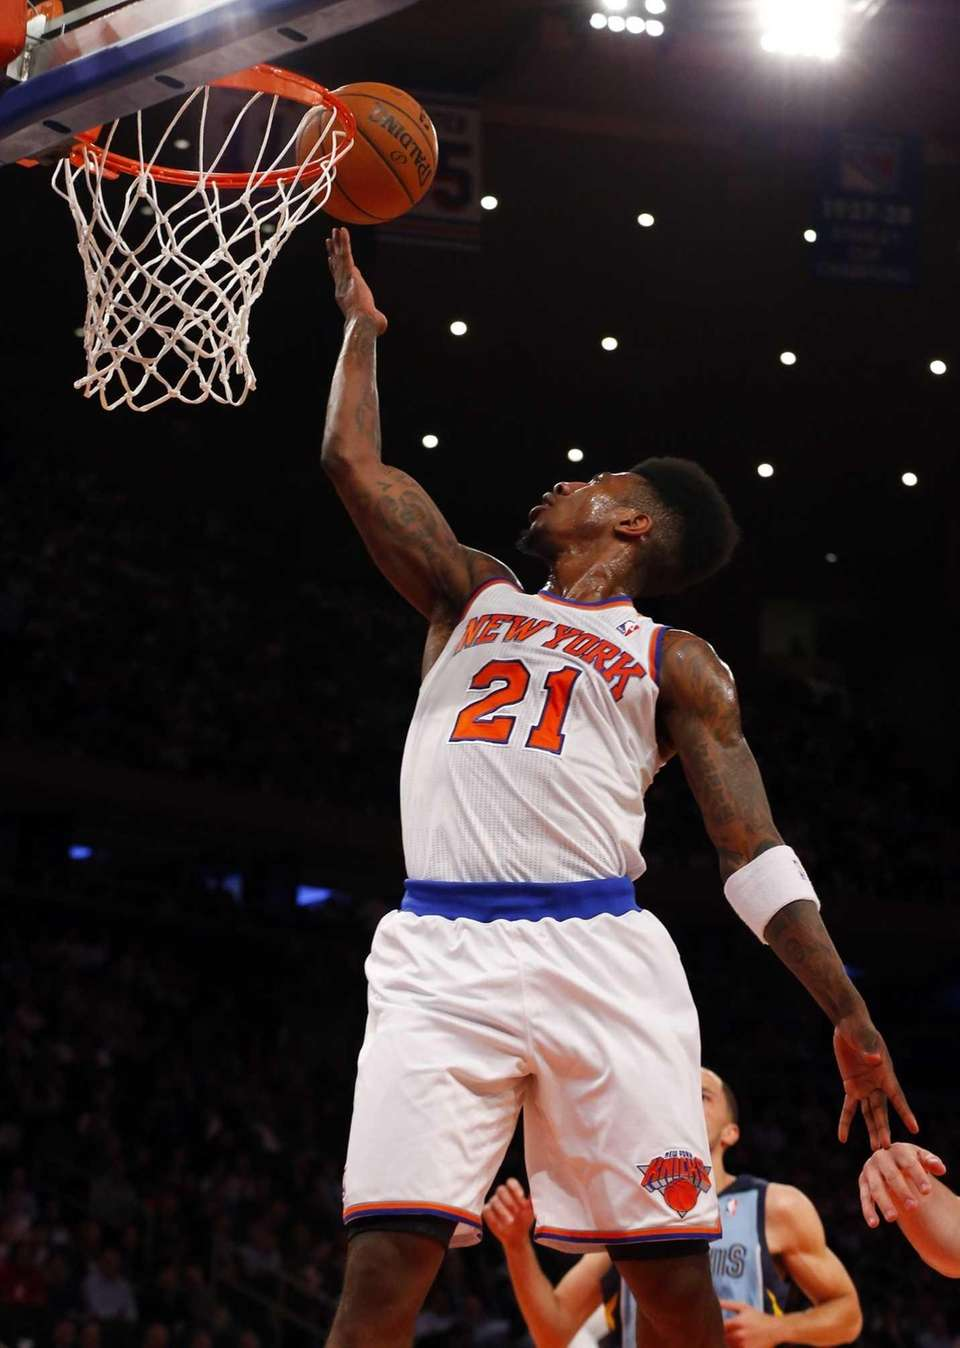 Iman Shumpert of the Knicks goes for a